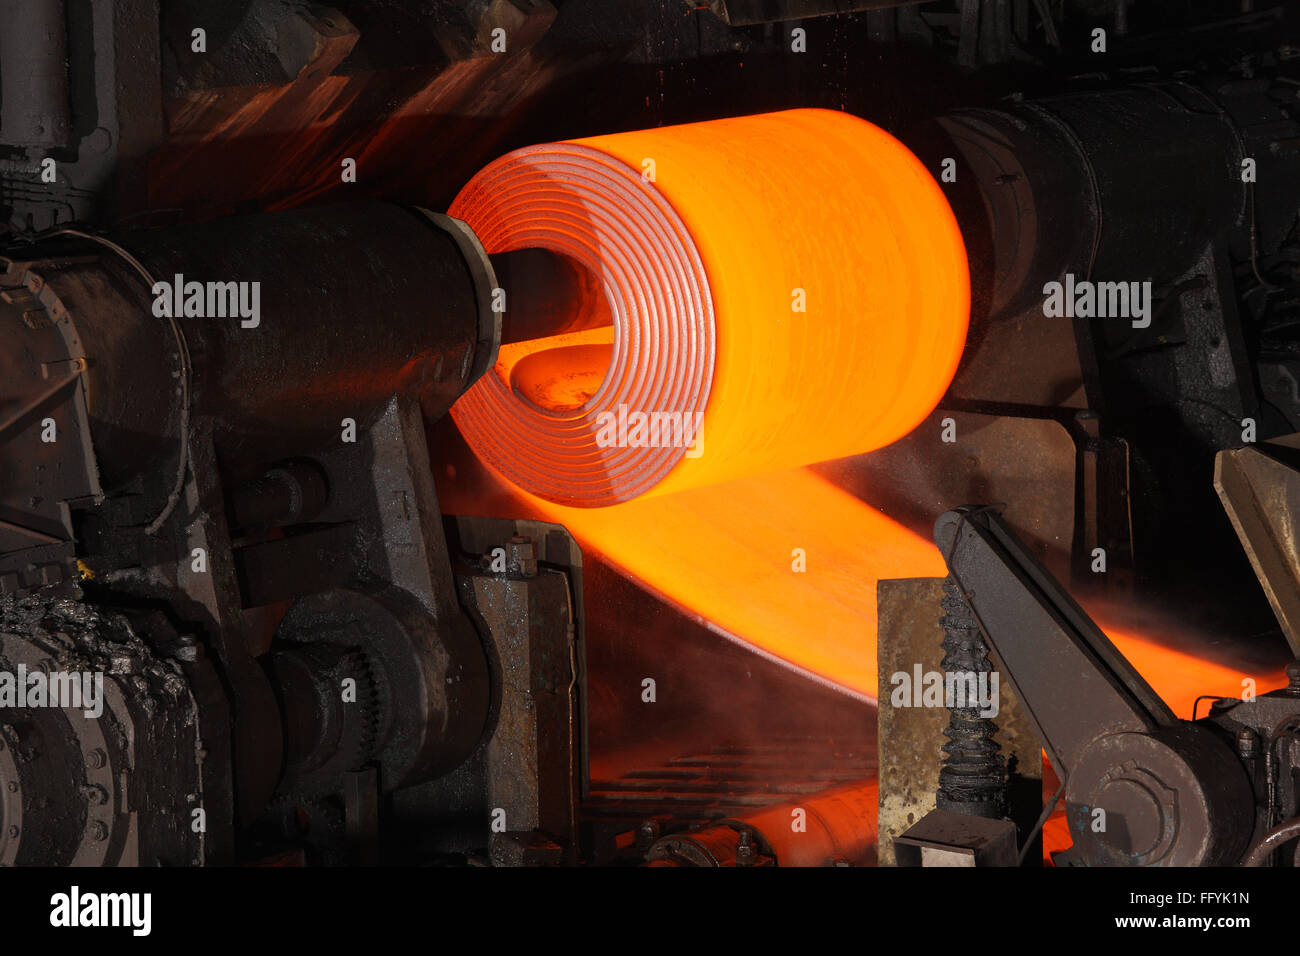 Red Hot Steel Coil in steel factory India - - Stock Image